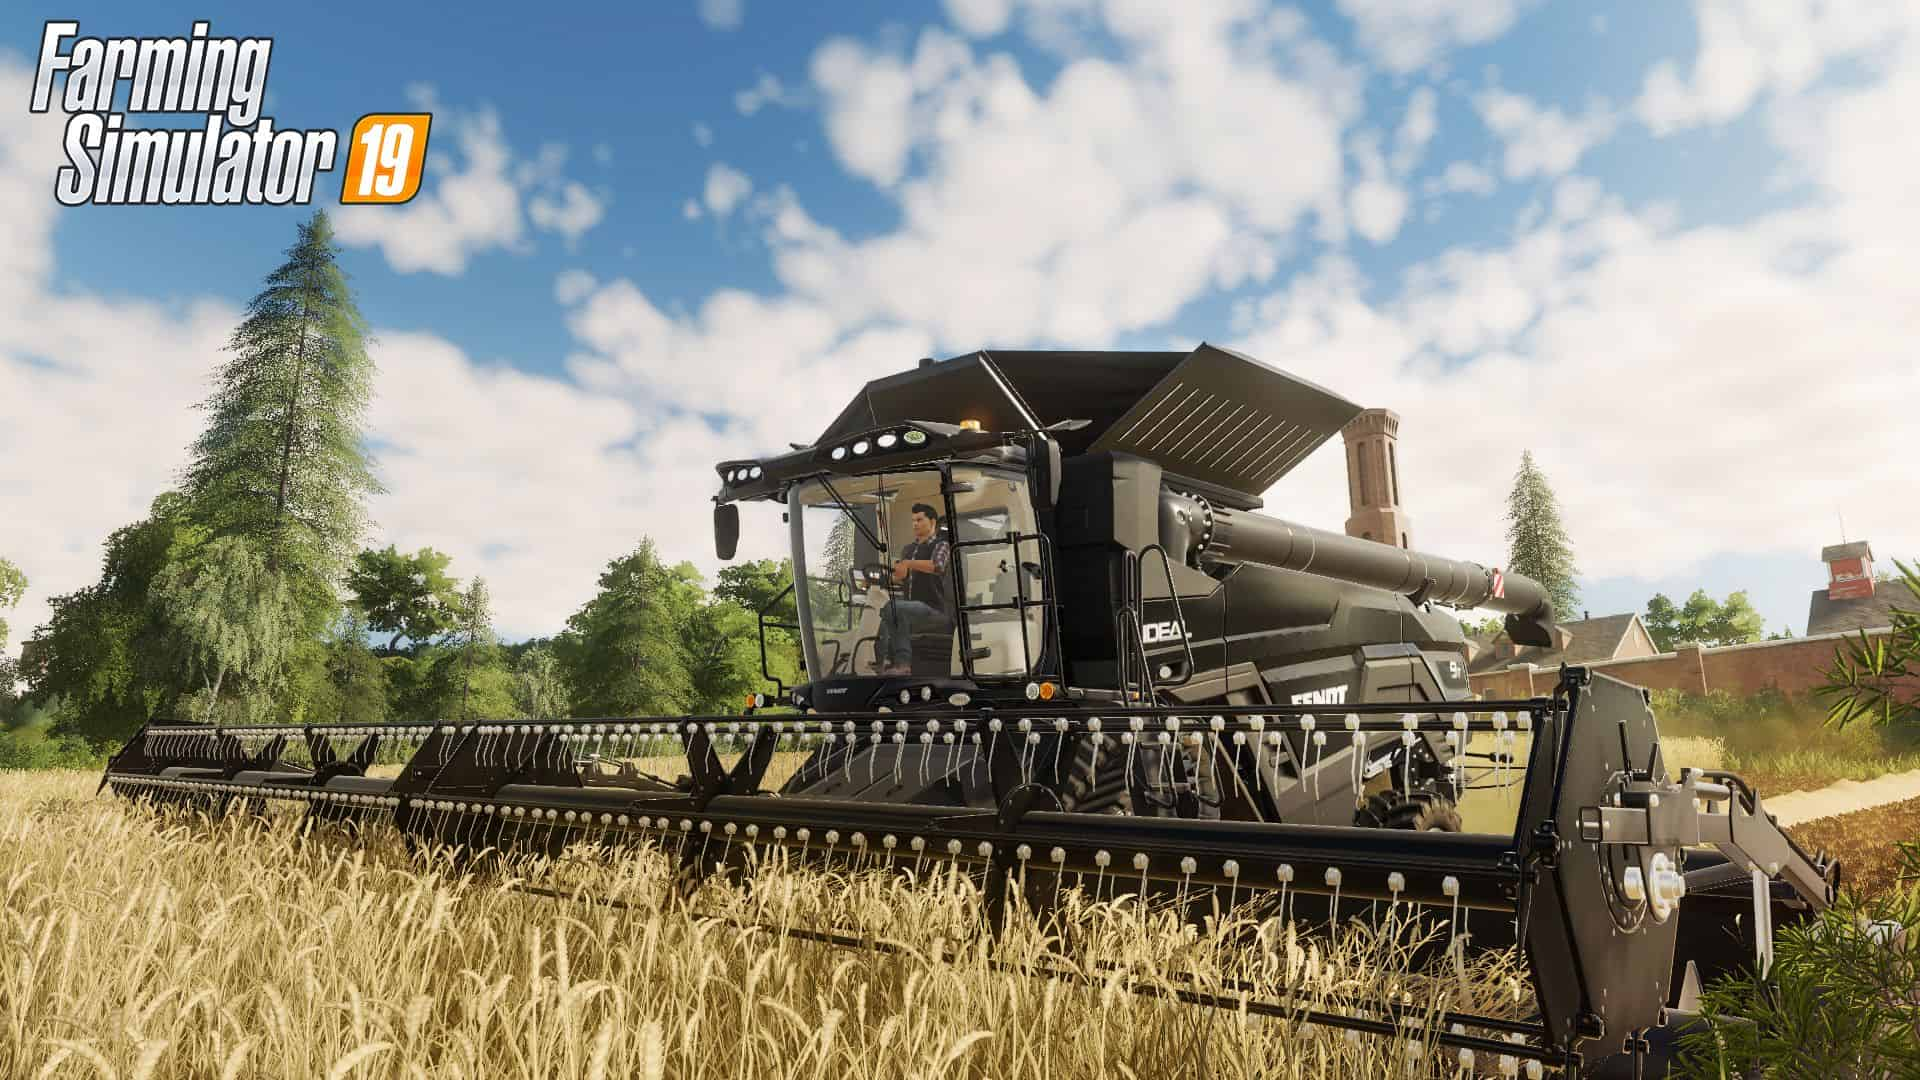 When is Farming Simulator 19 coming out? | When is FS19